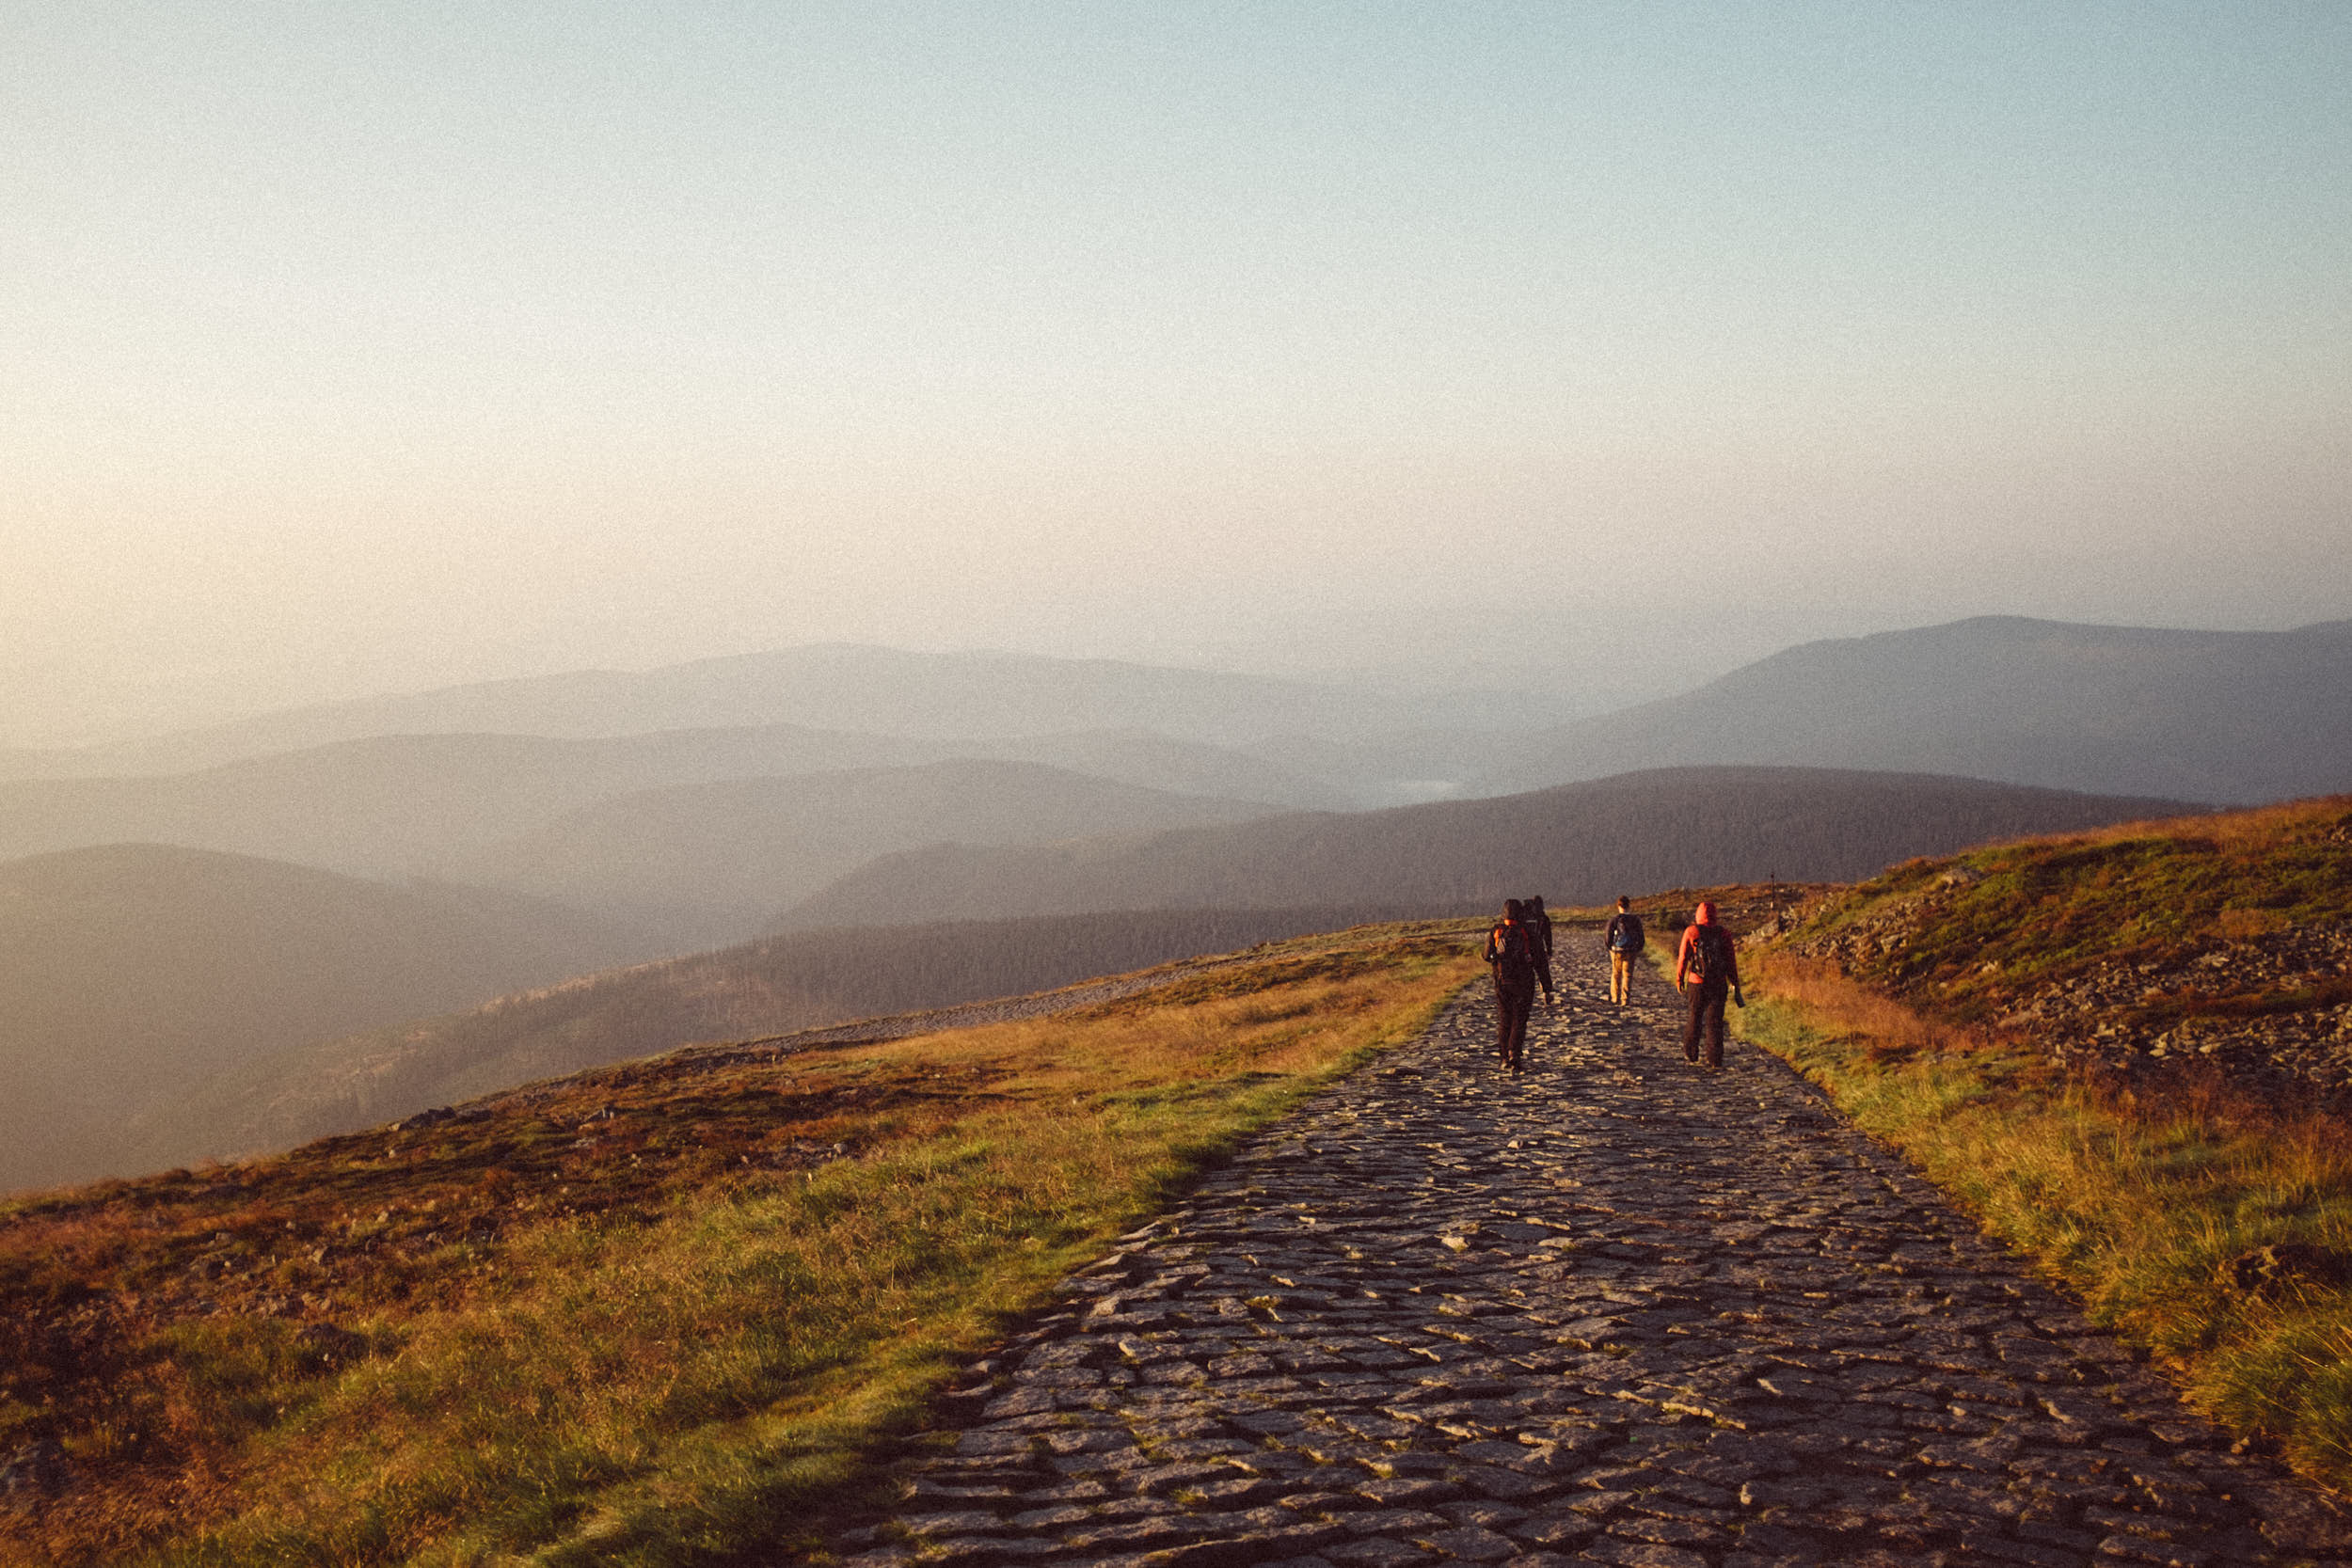 Beautiful landscape photography with a group of people descending a mountain at dawn.